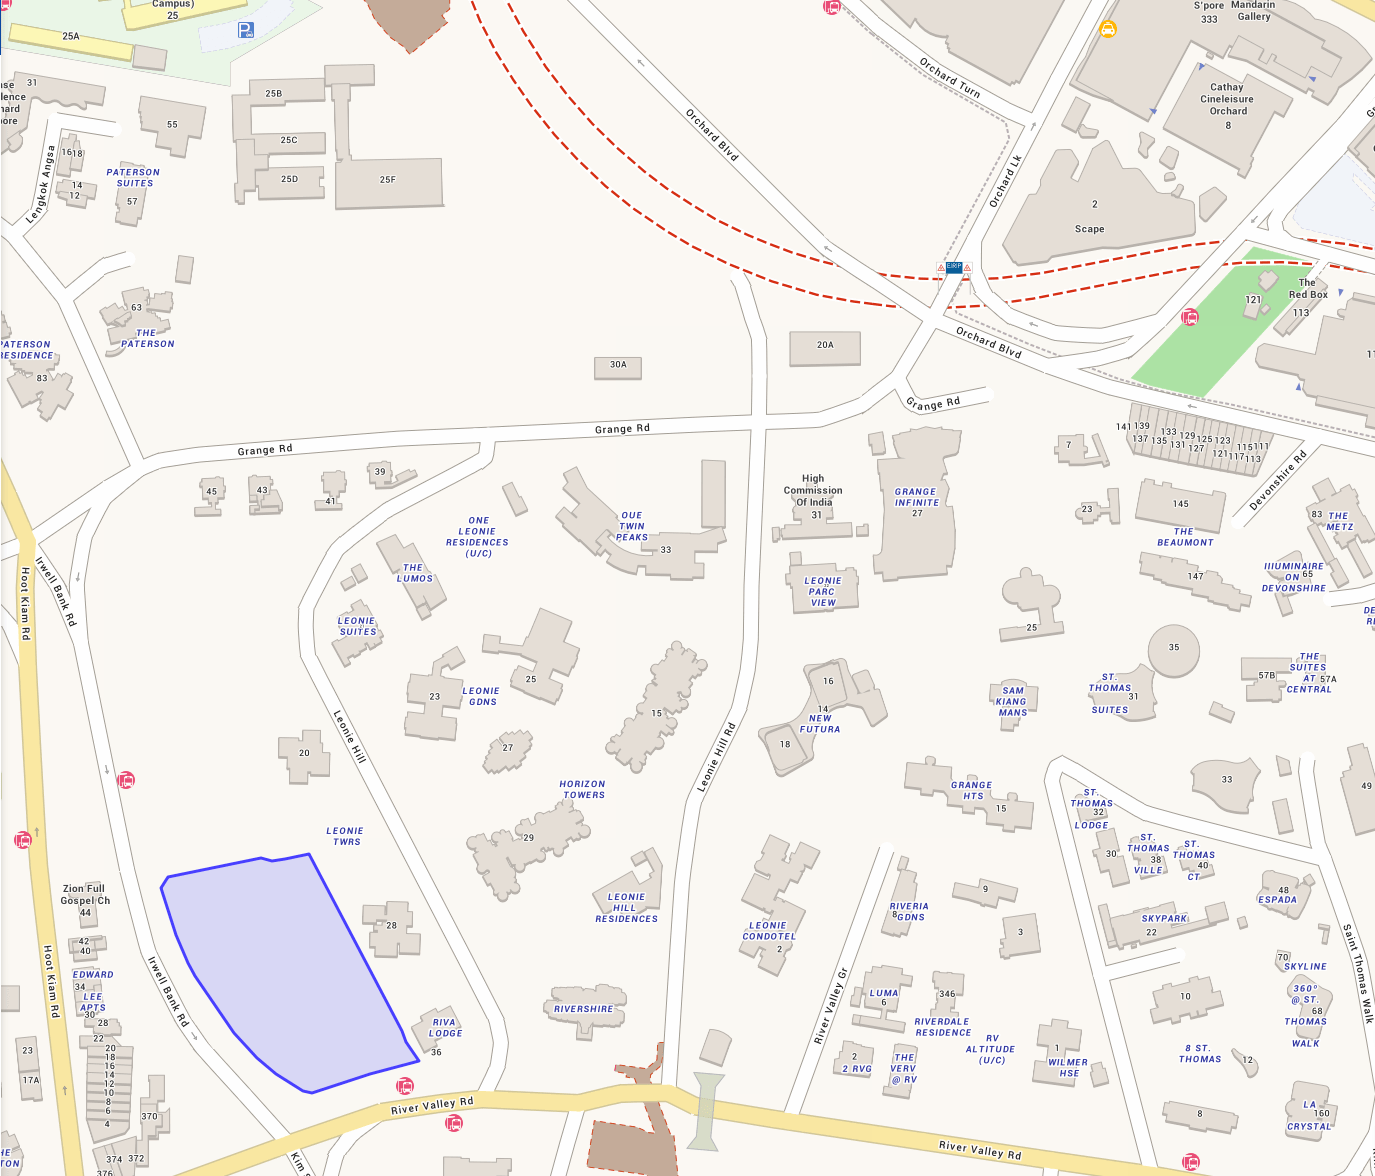 One Map Location Showing Where Irwell Hill Residences Condo at Irwell Bank Road River Valley by CDL